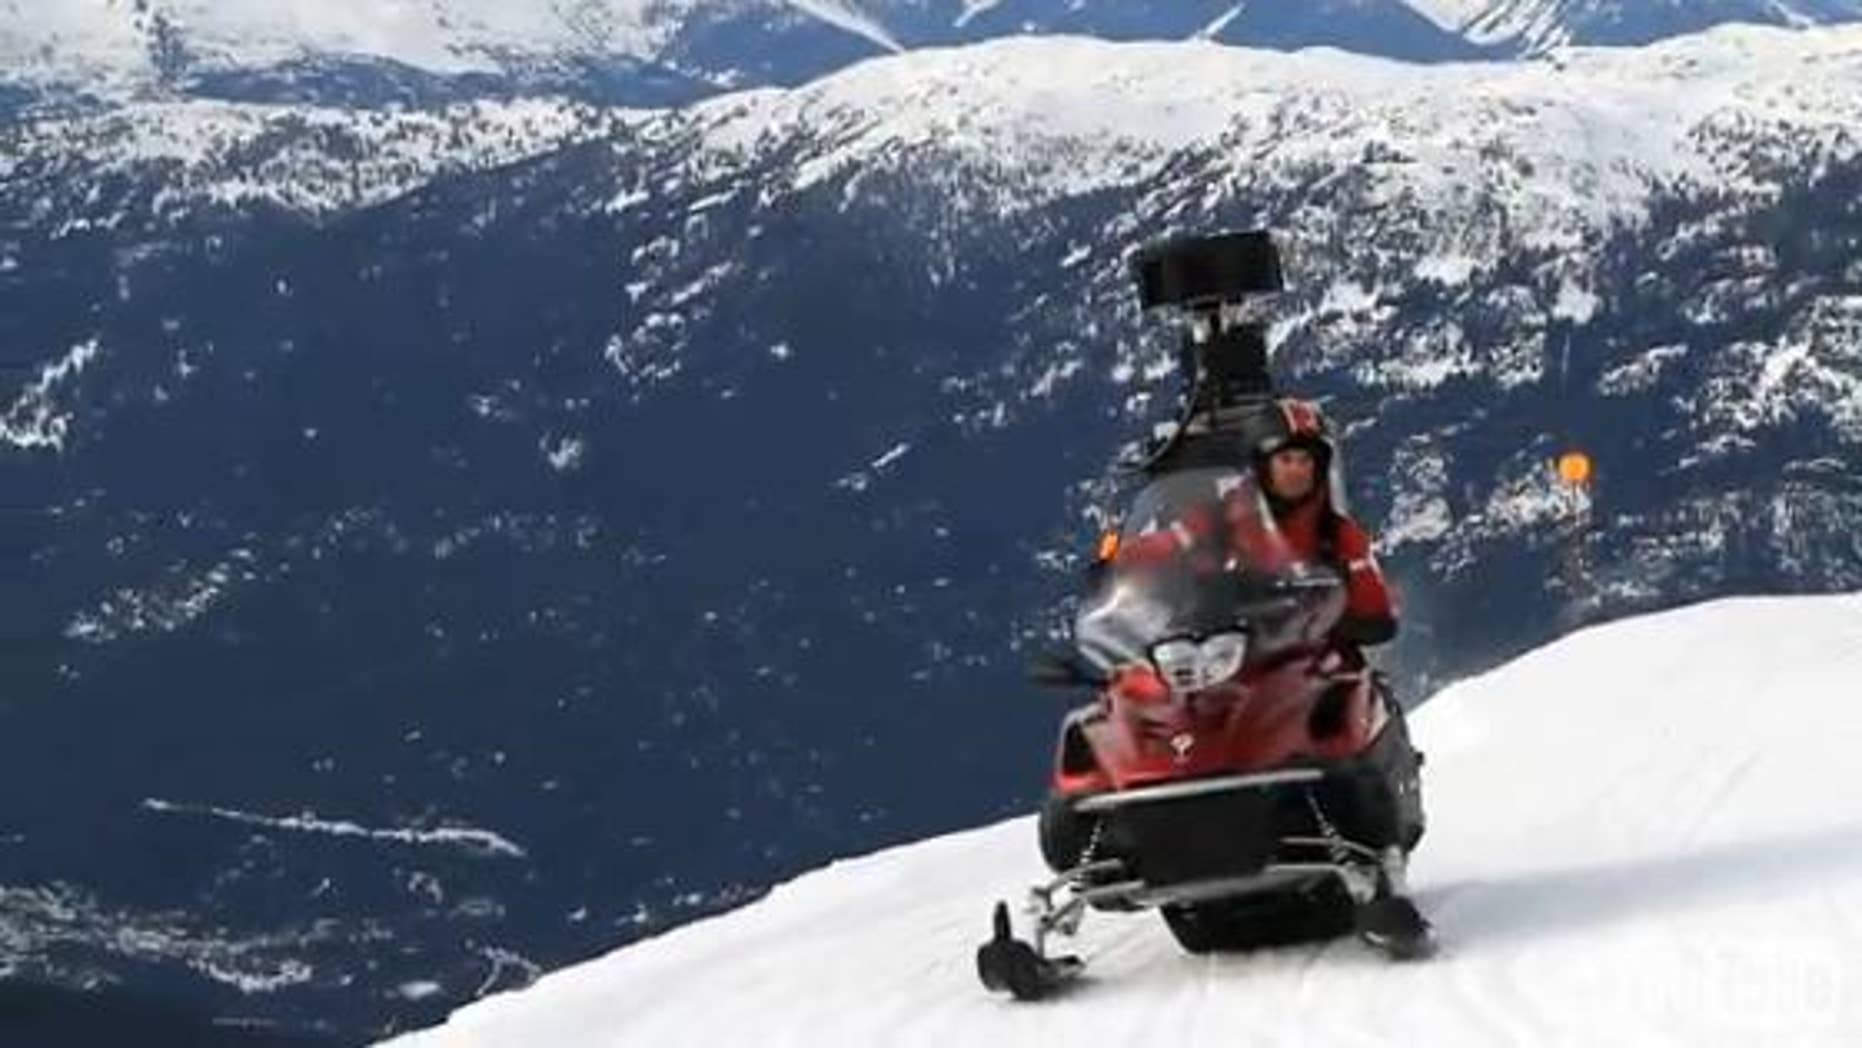 Just in time for the Winter Olympics, Google has expanded its street view mapping technology through a customzied snowmobile.